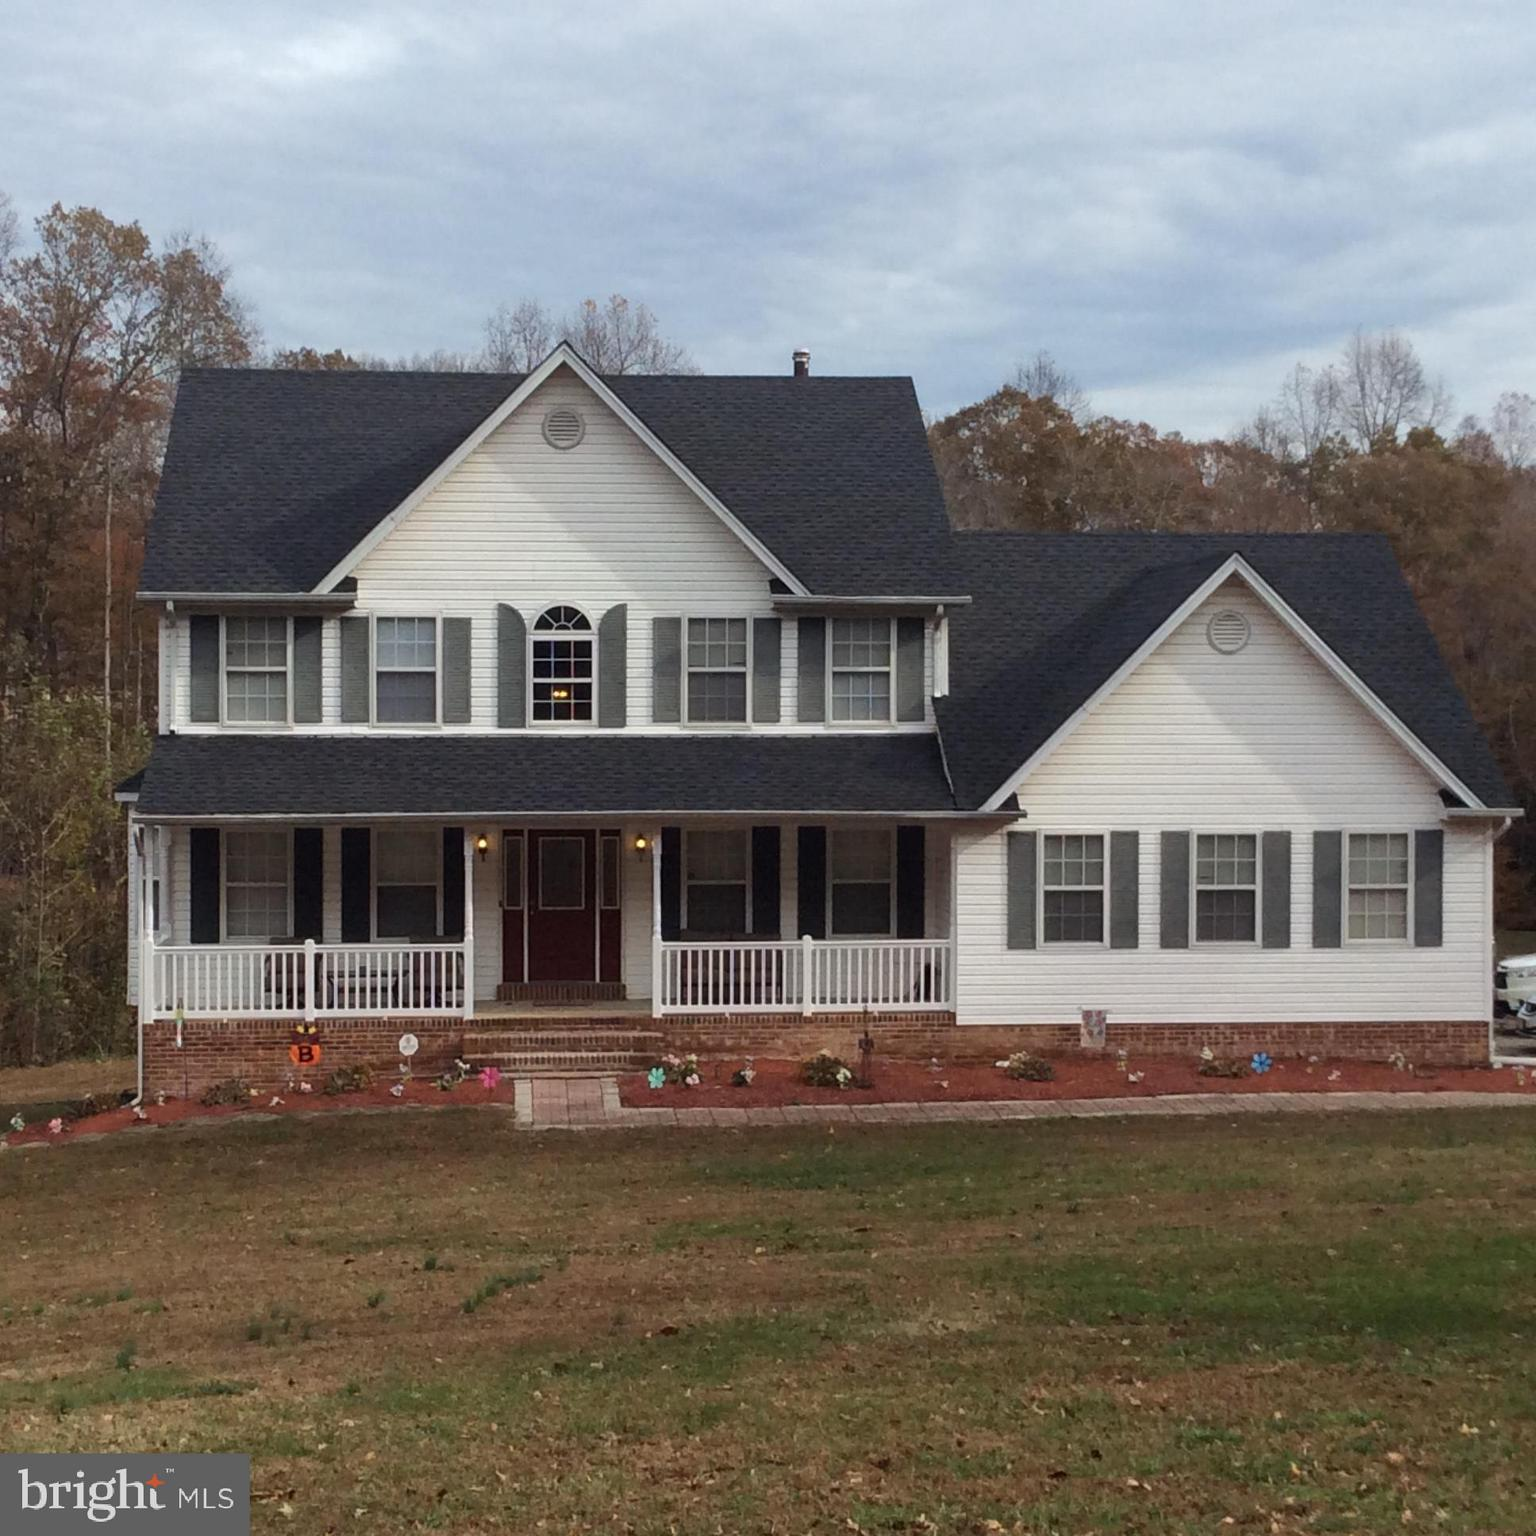 Beautiful large home on an amazing 3 acre lot.  This gorgeous home has 3 finished levels with lots &